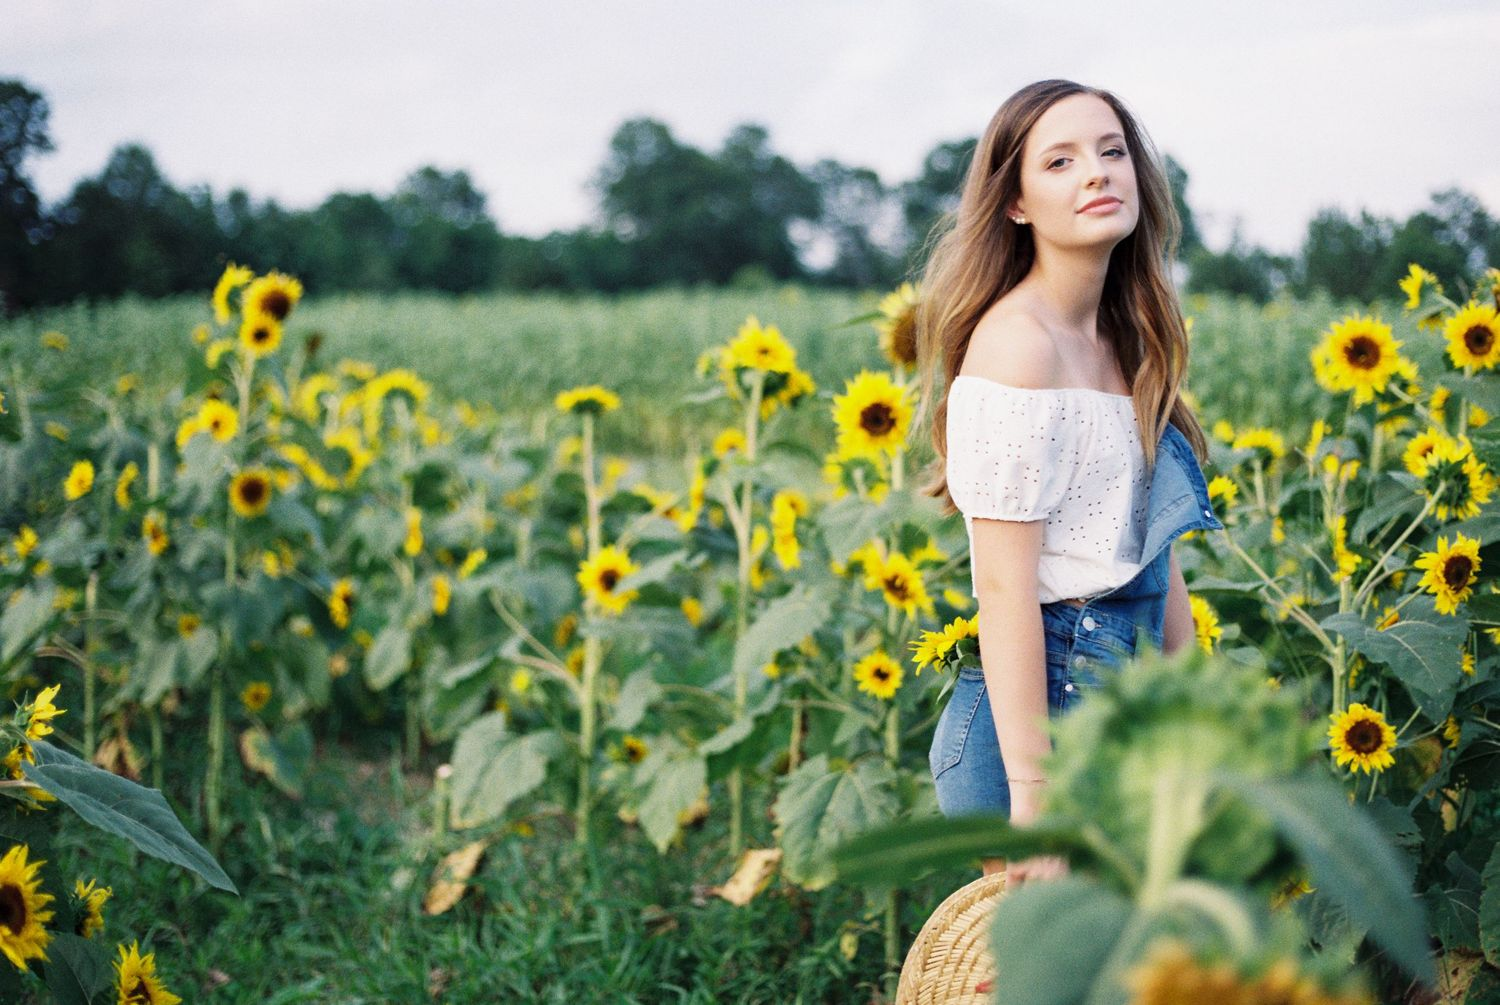 Louisiana senior portraits of a female Oak Forest Academy student at a sunflower field in Picayune, Mississippi